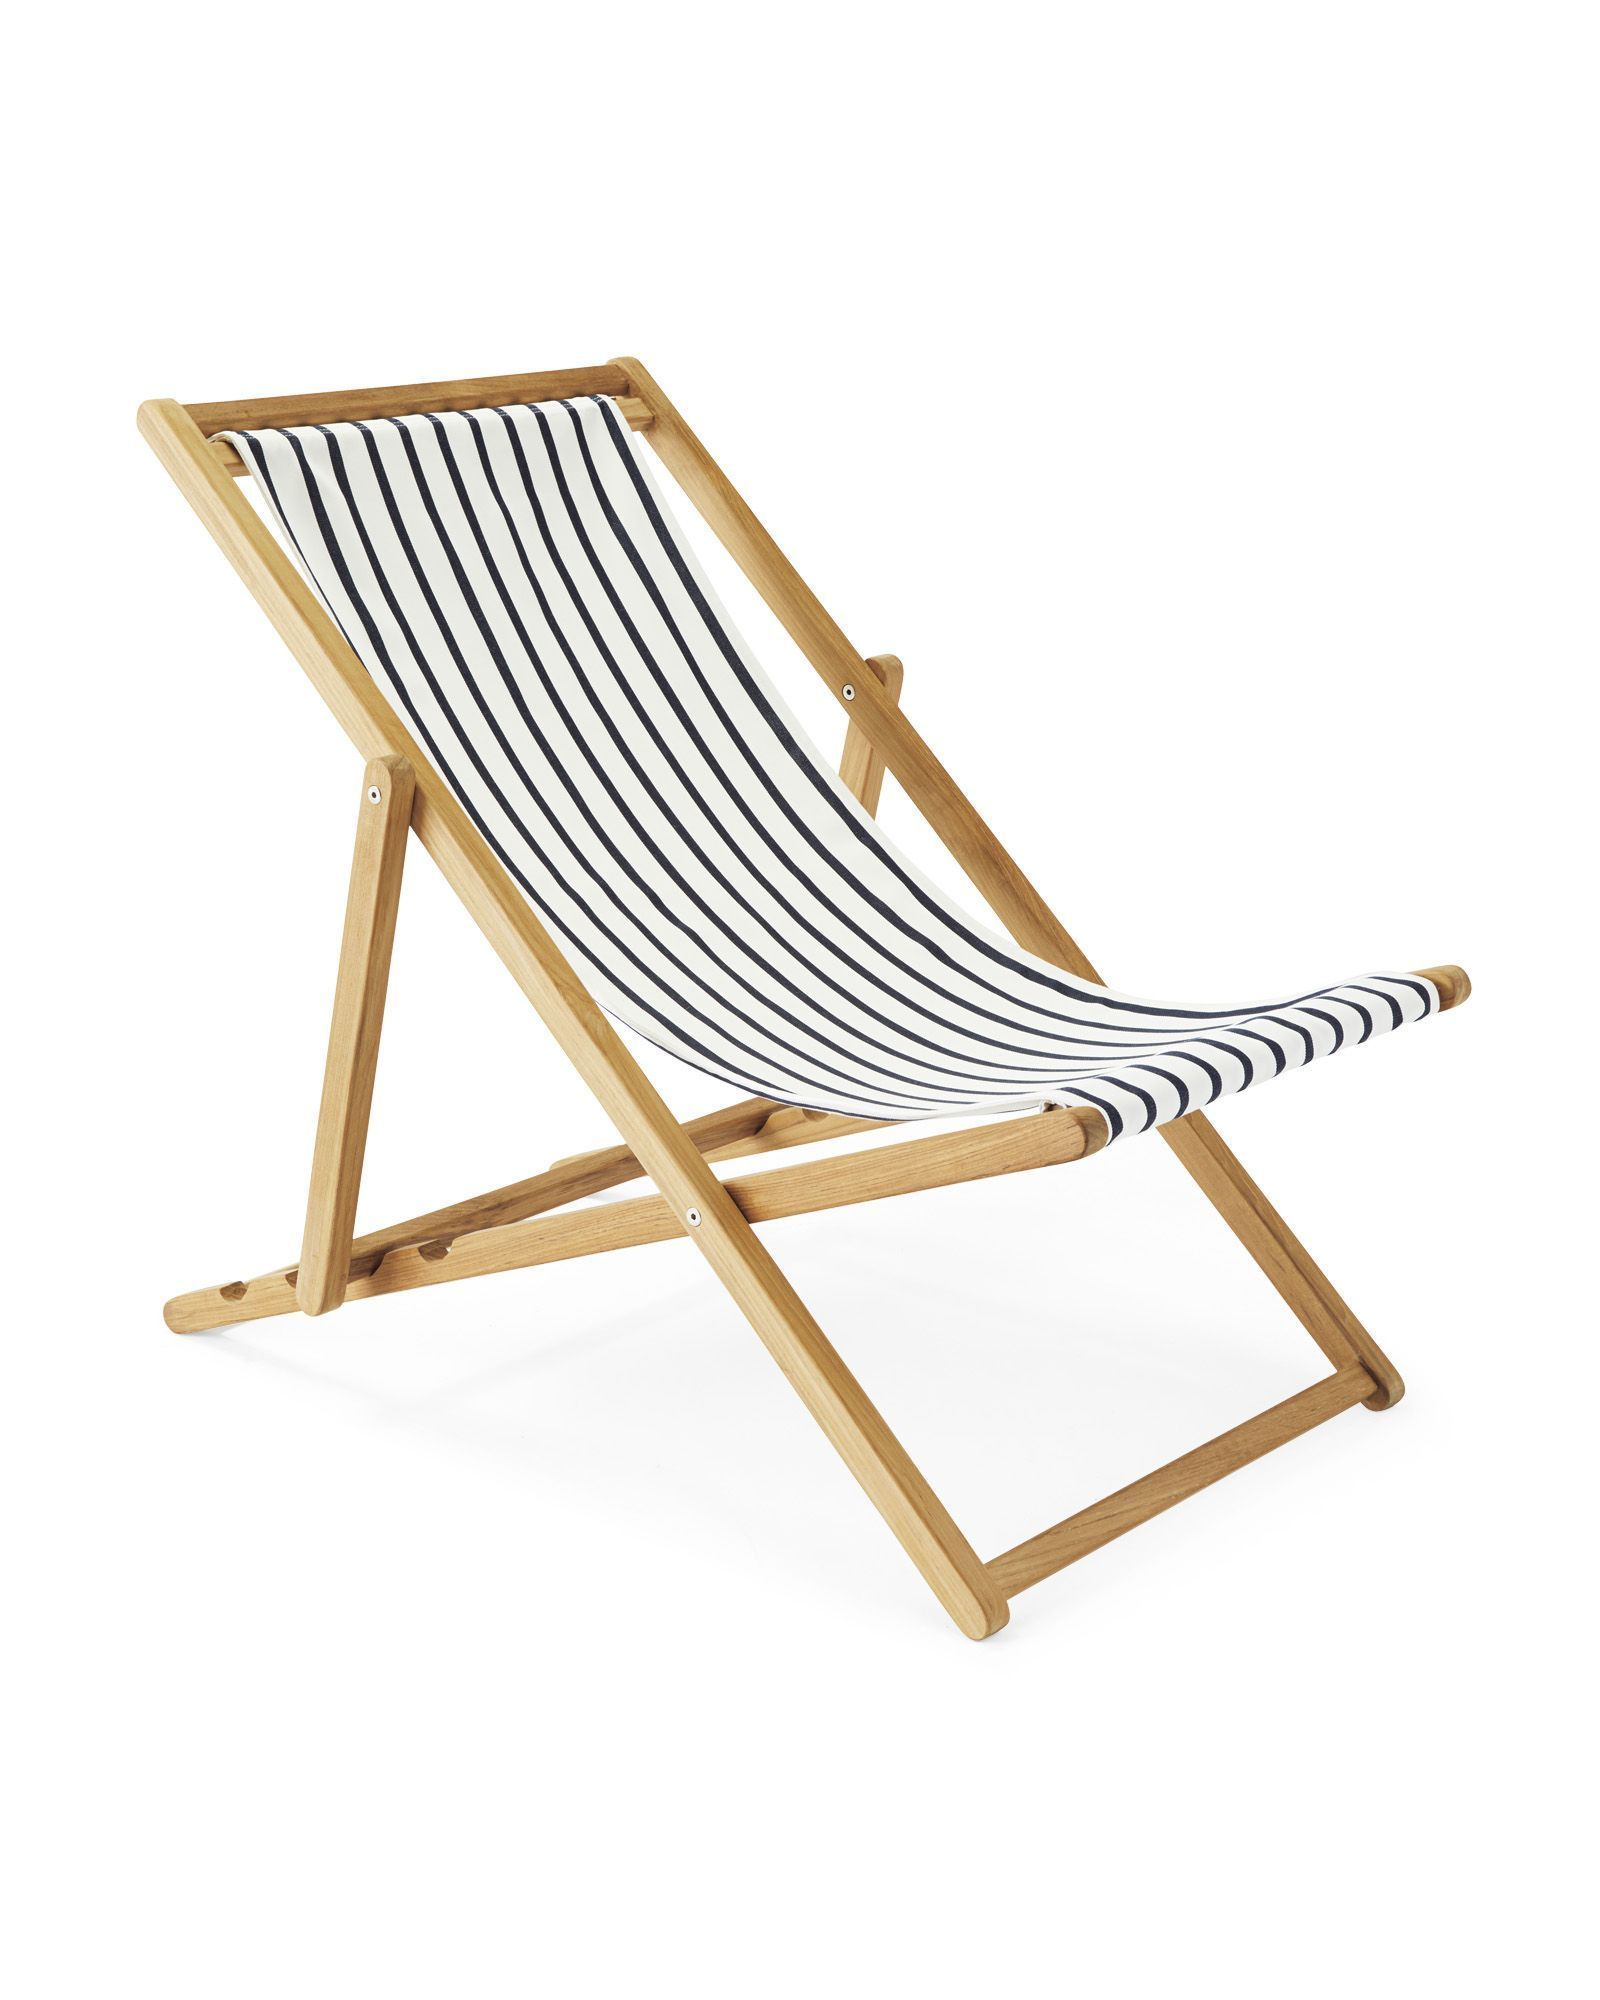 A Laid Back Favorite Our Classic Sling Pairs A Sleek Teak Frame With Weather Friendly Fabrics Used Outdoor Furniture Teak Patio Furniture Lounge Chair Outdoor